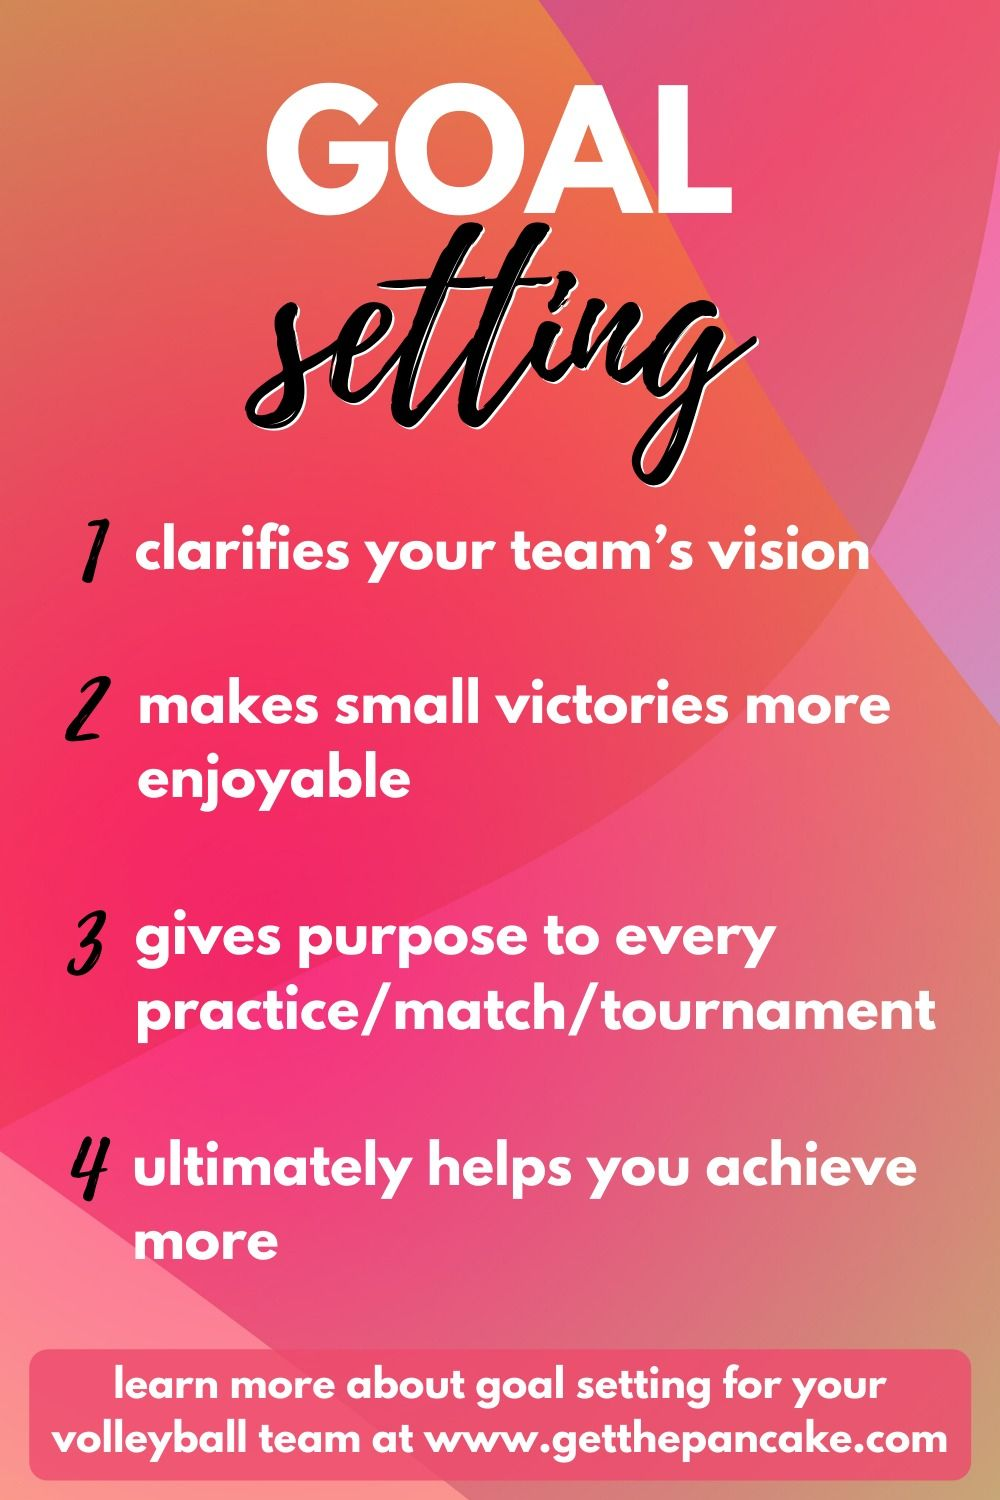 Goal Setting With Your Volleyball Team In 2020 Coaching Volleyball Volleyball Team Goals